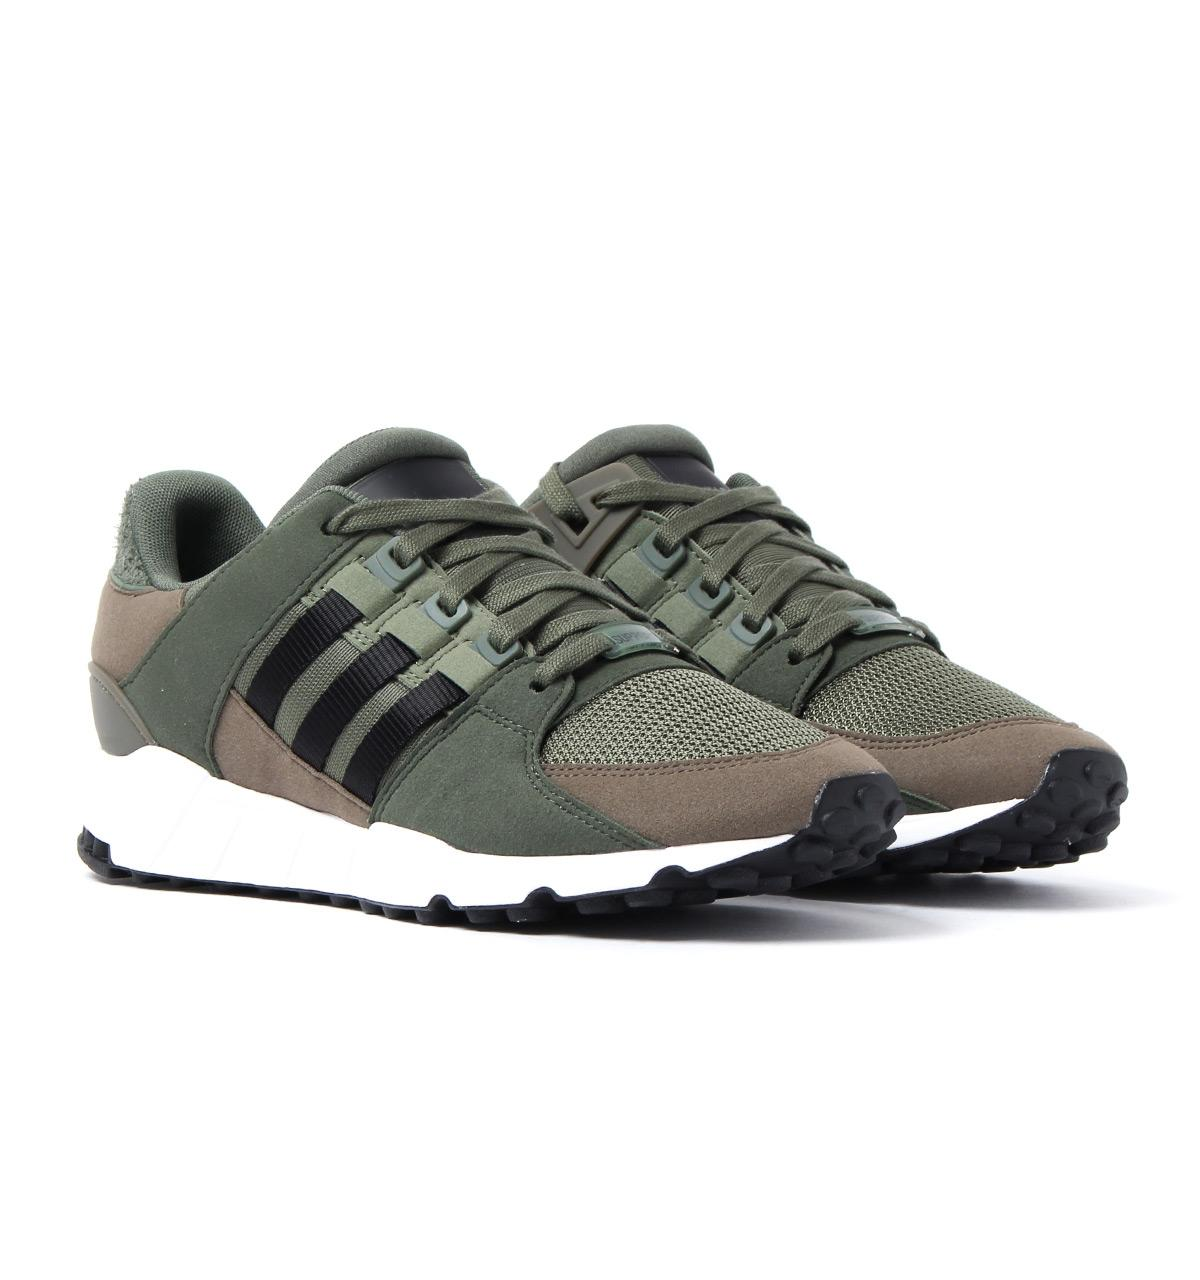 premium selection 291d4 bb721 adidas Originals Eqt Support Rf Army Green Mesh Trainers in Green ...